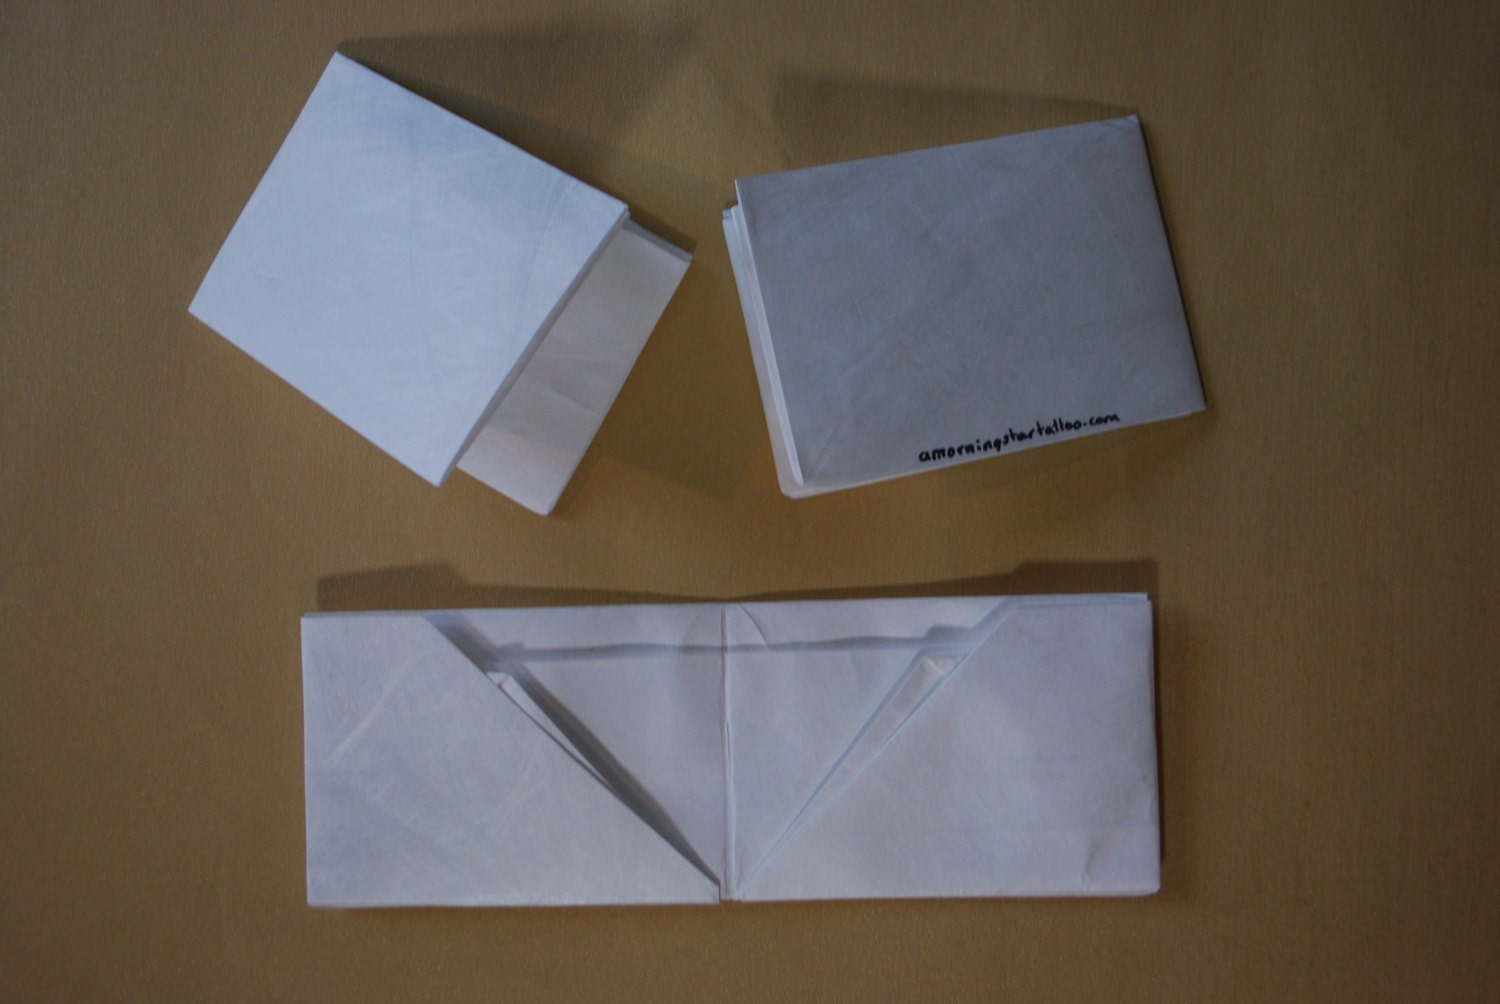 where to buy tyvek paper 2018-6-3 why should i buy a tyvek® envelope versus a paper envelope what is tyvek® what sizes do tyvek® envelopes come in what other things are made of tyvek.